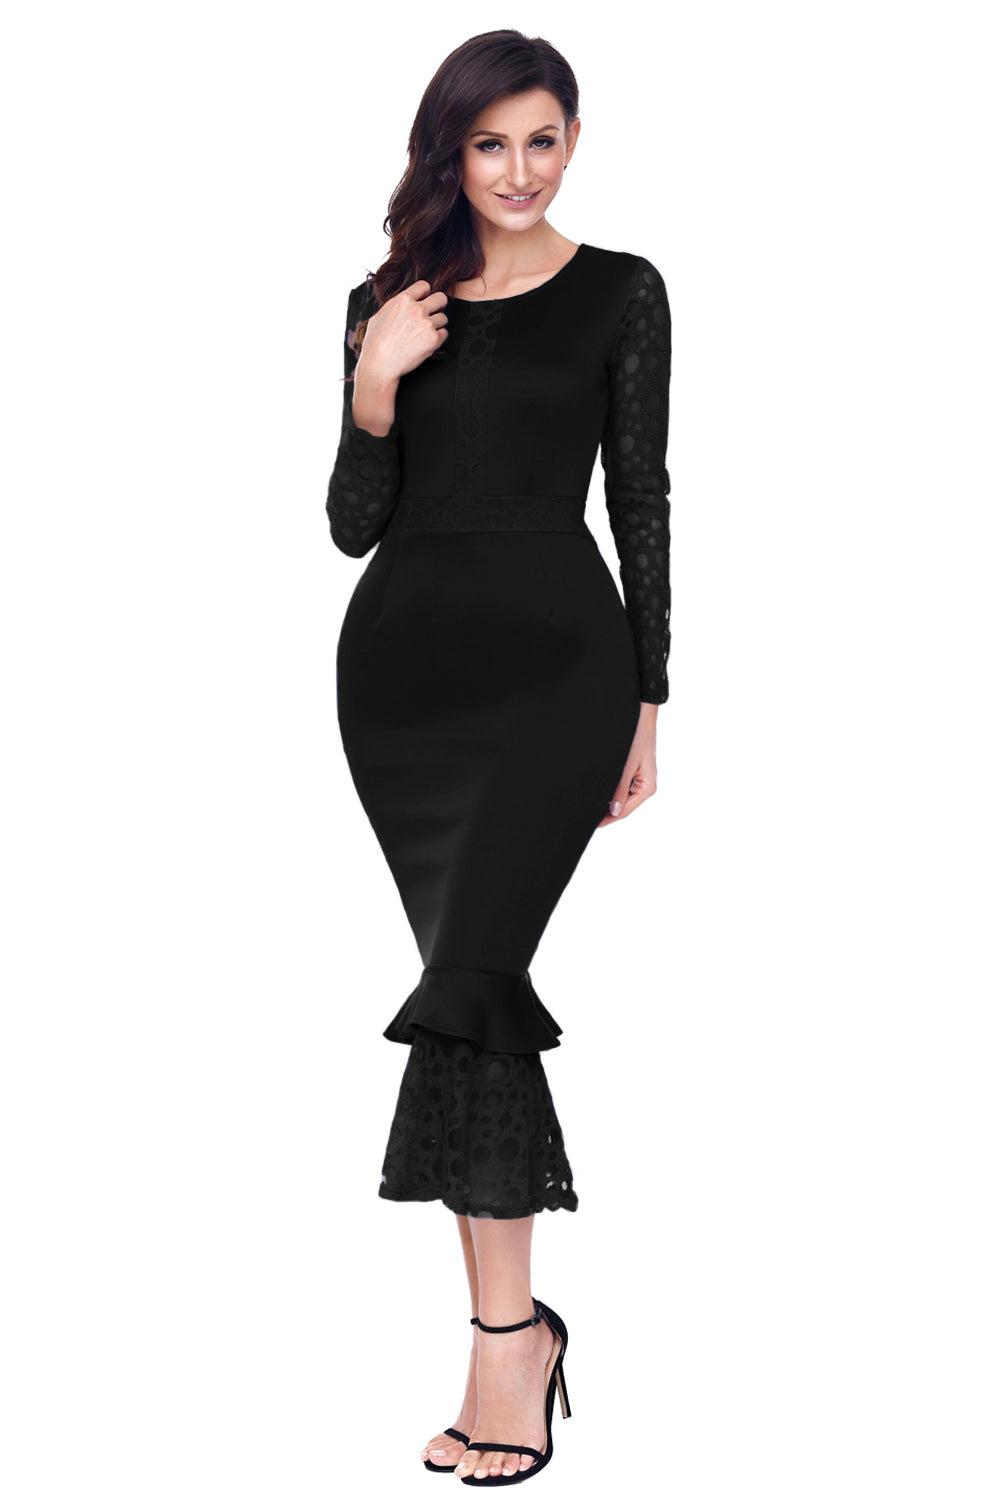 Chicloth Black Hollow-out Long Sleeve Lace Ruffle Bodycon Midi Dress - L / Black